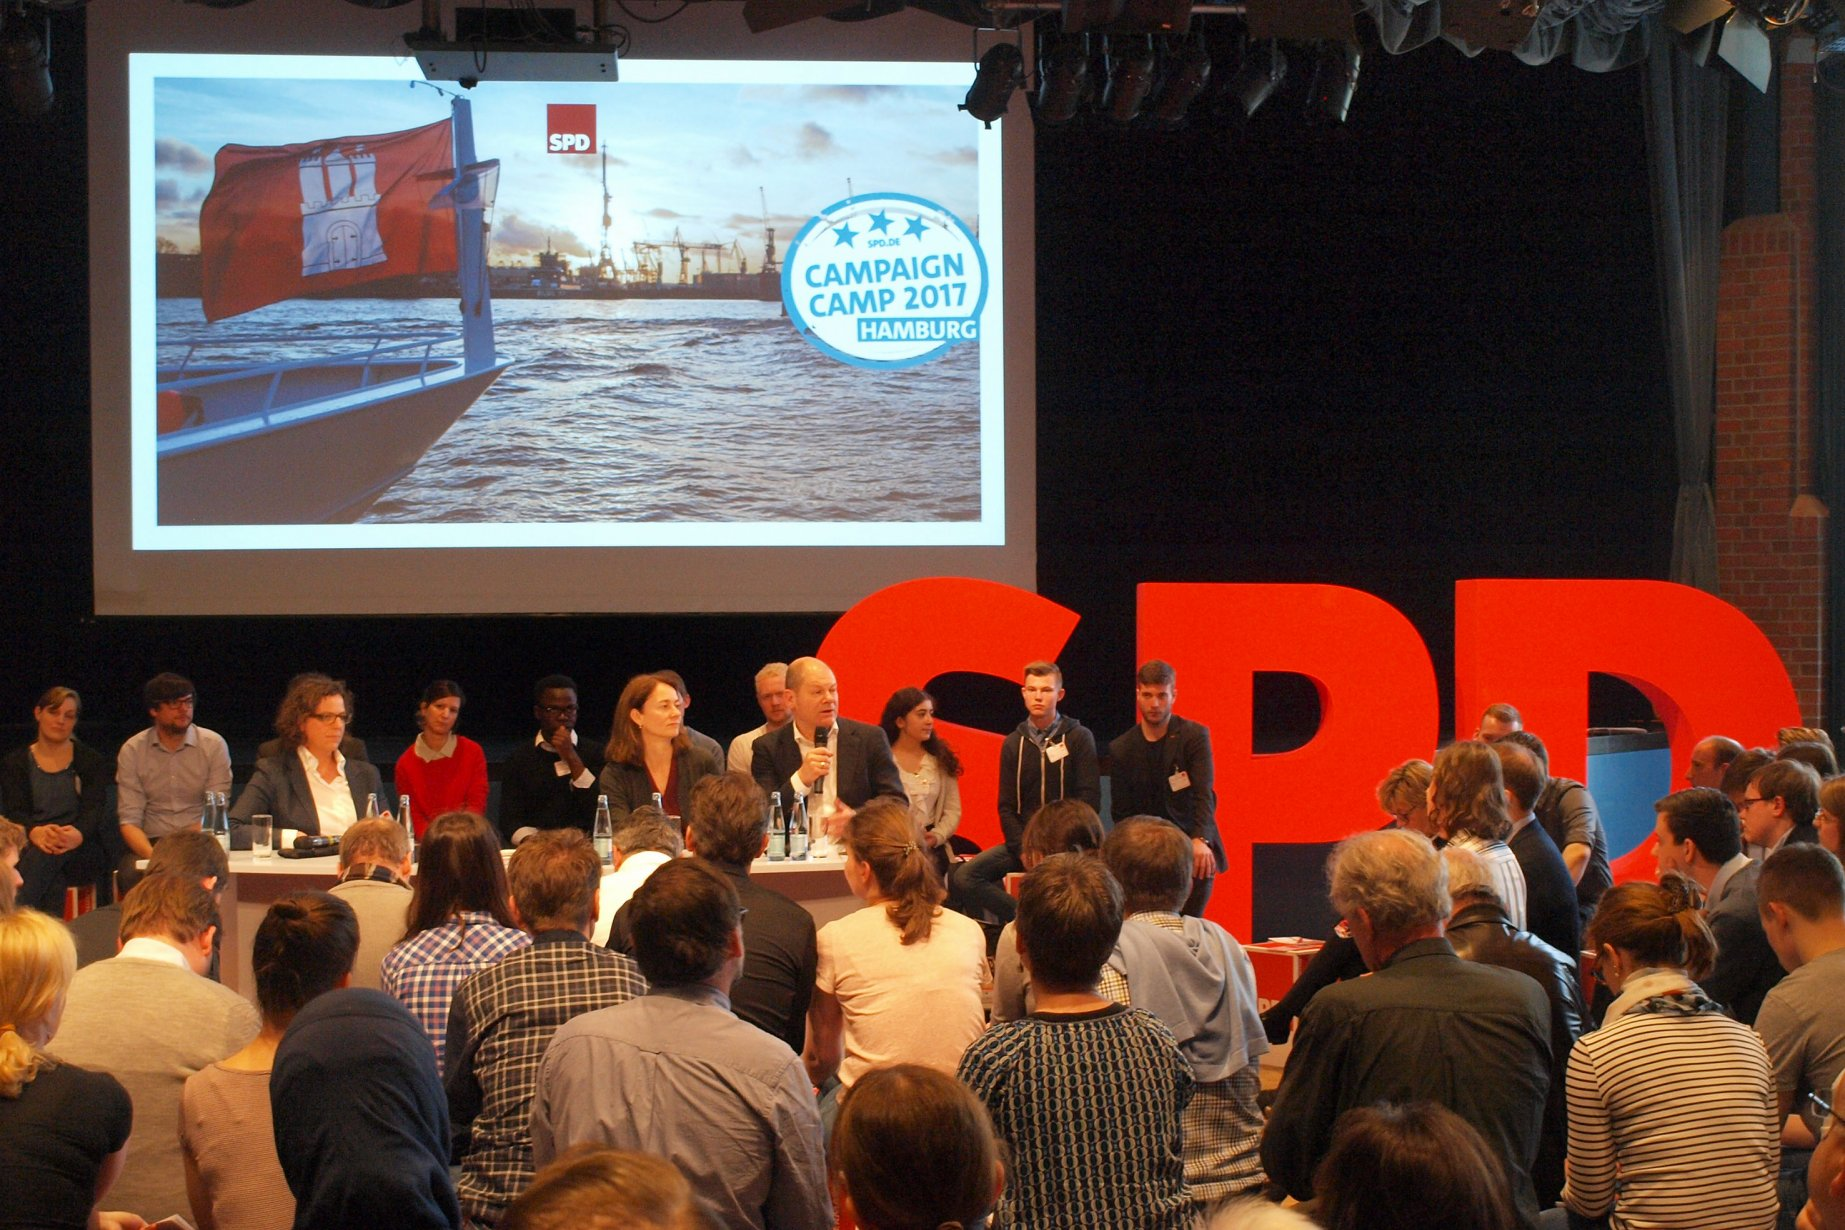 Campaign Camp der SPD in Hamburg